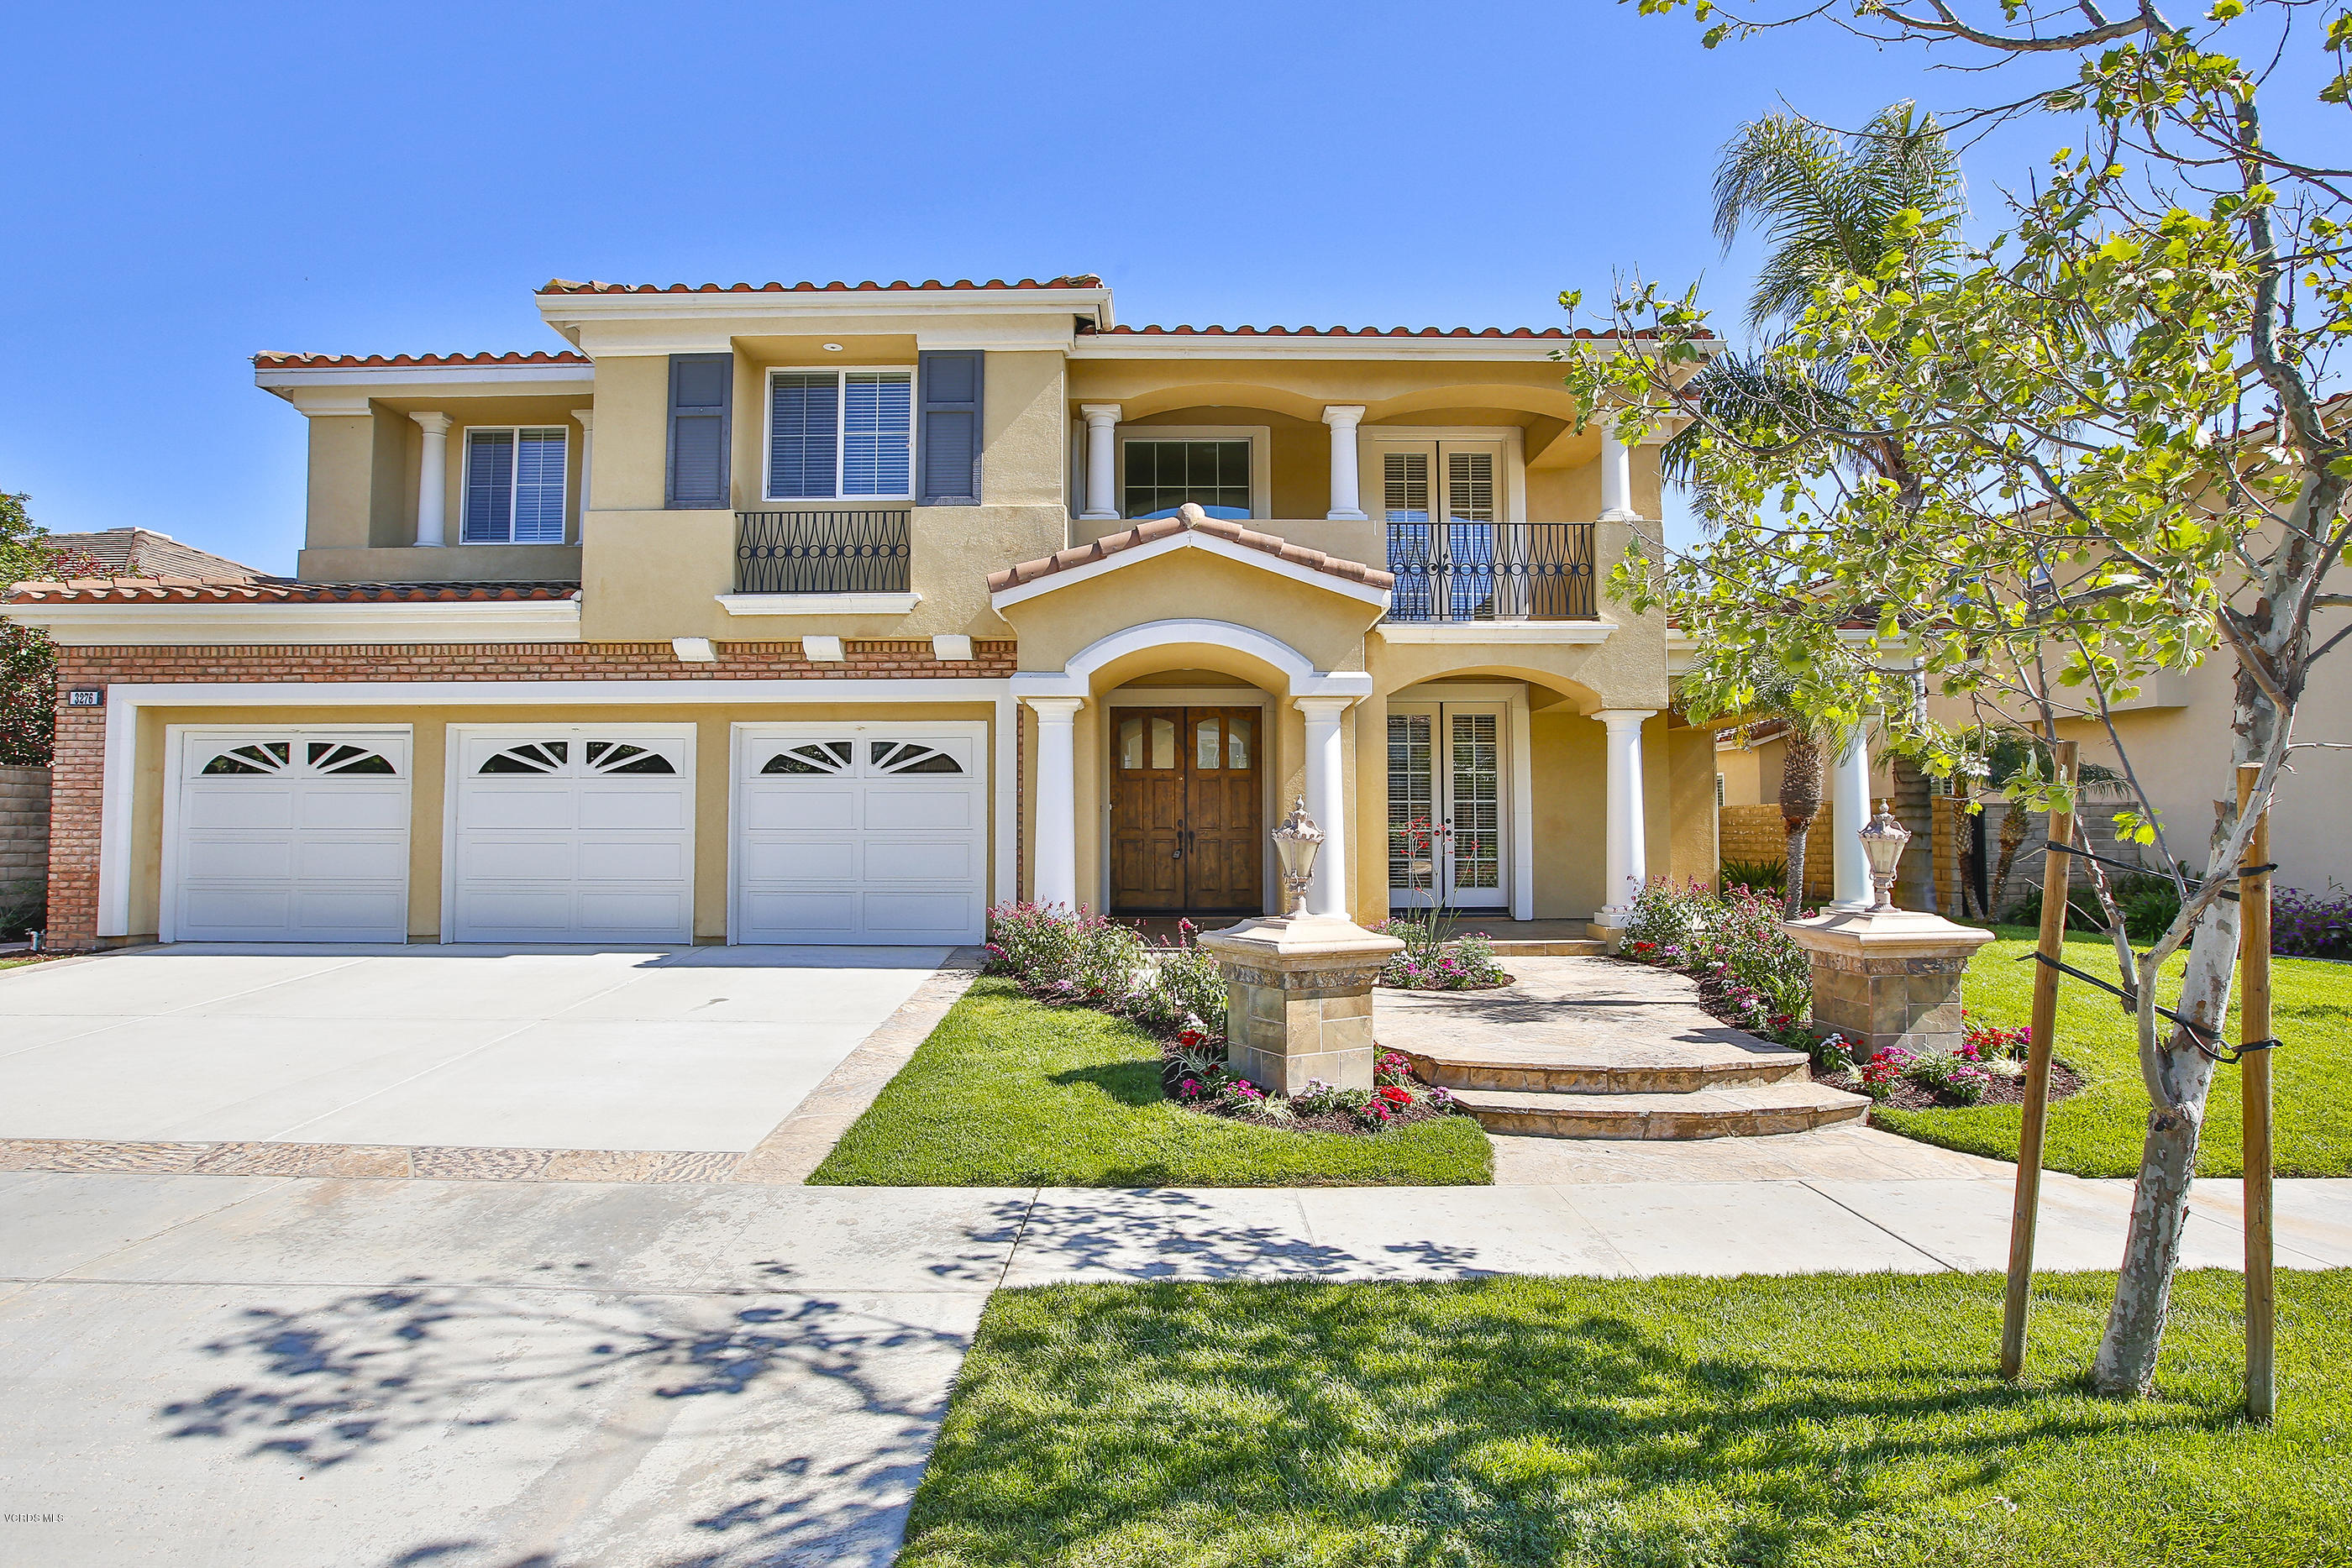 Photo of 3276 Willow Canyon Street, Thousand Oaks, CA 91362